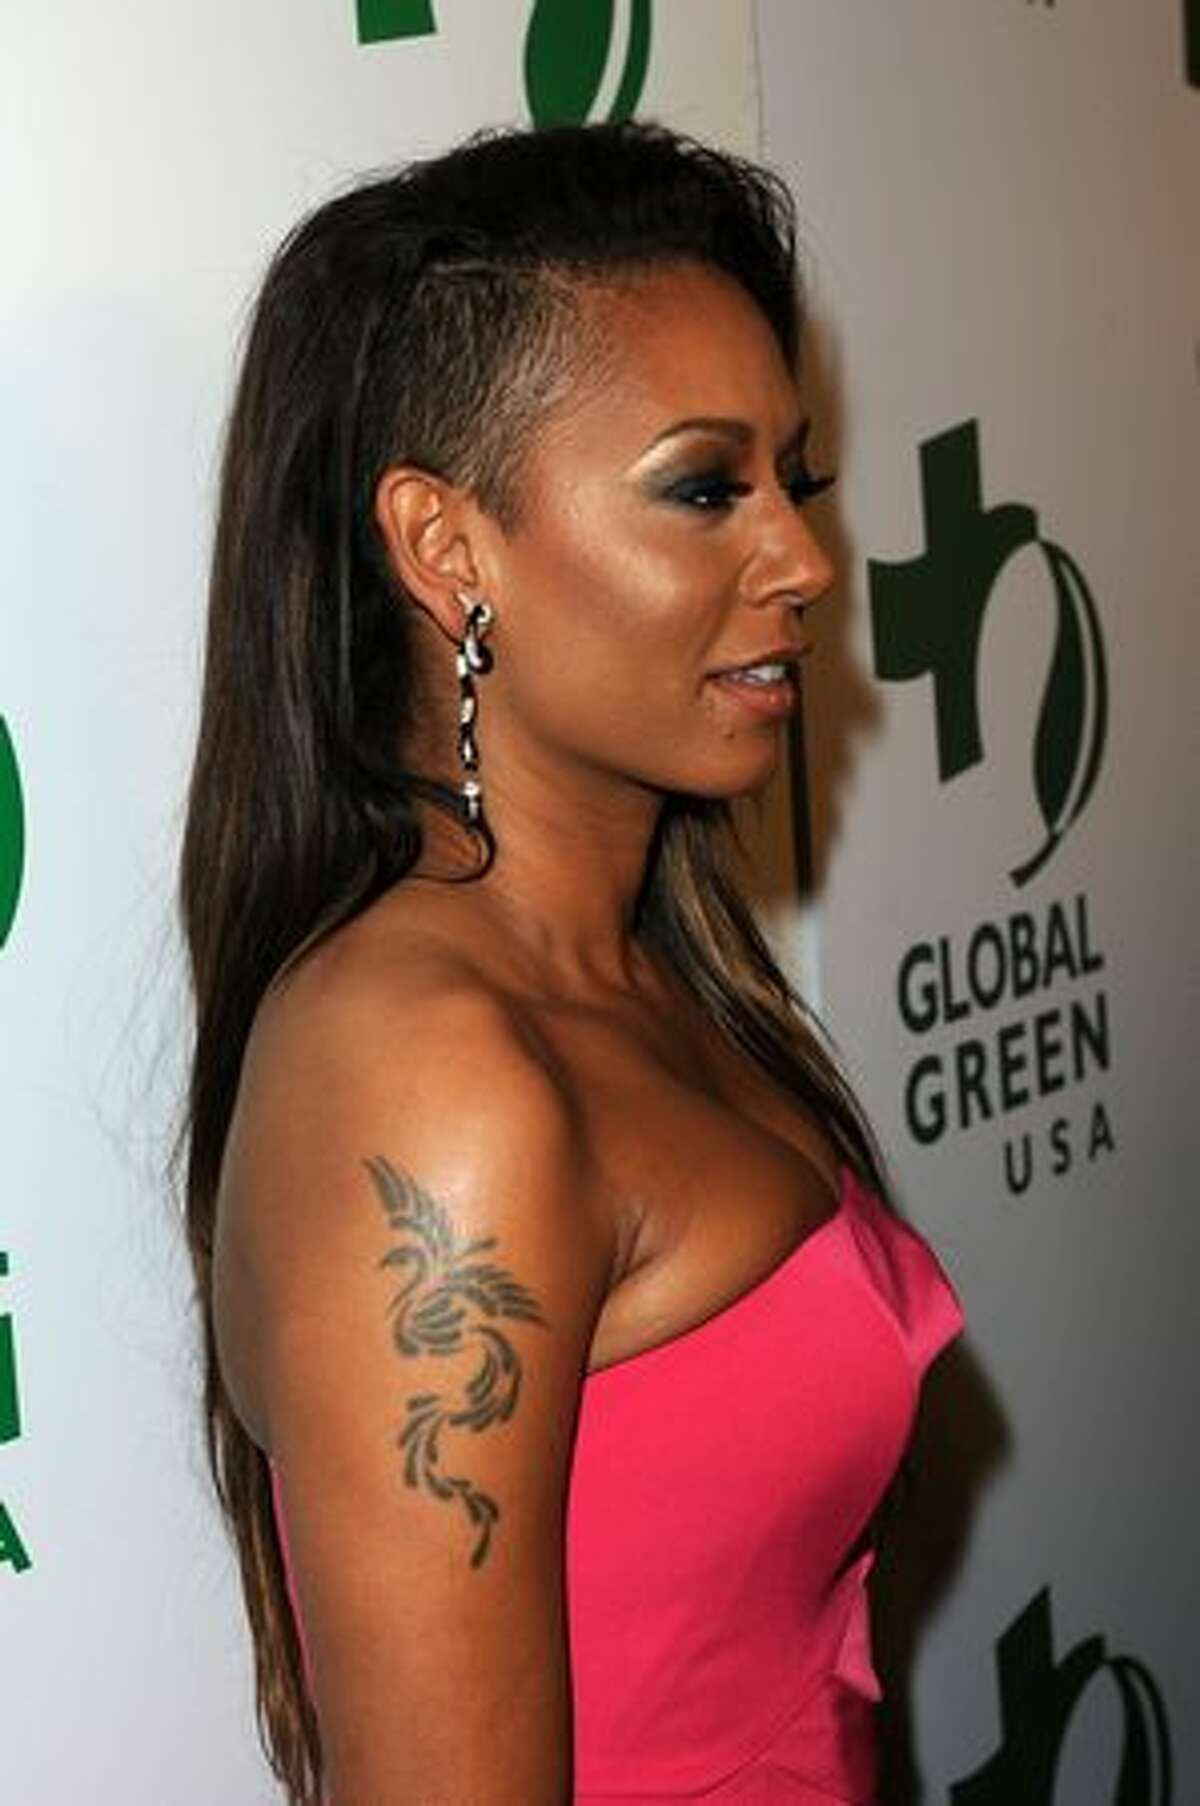 Singer Melanie Brown arrives at Global Green USA's 7th Annual Pre-Oscar Party at Avalon in Hollywood, California.